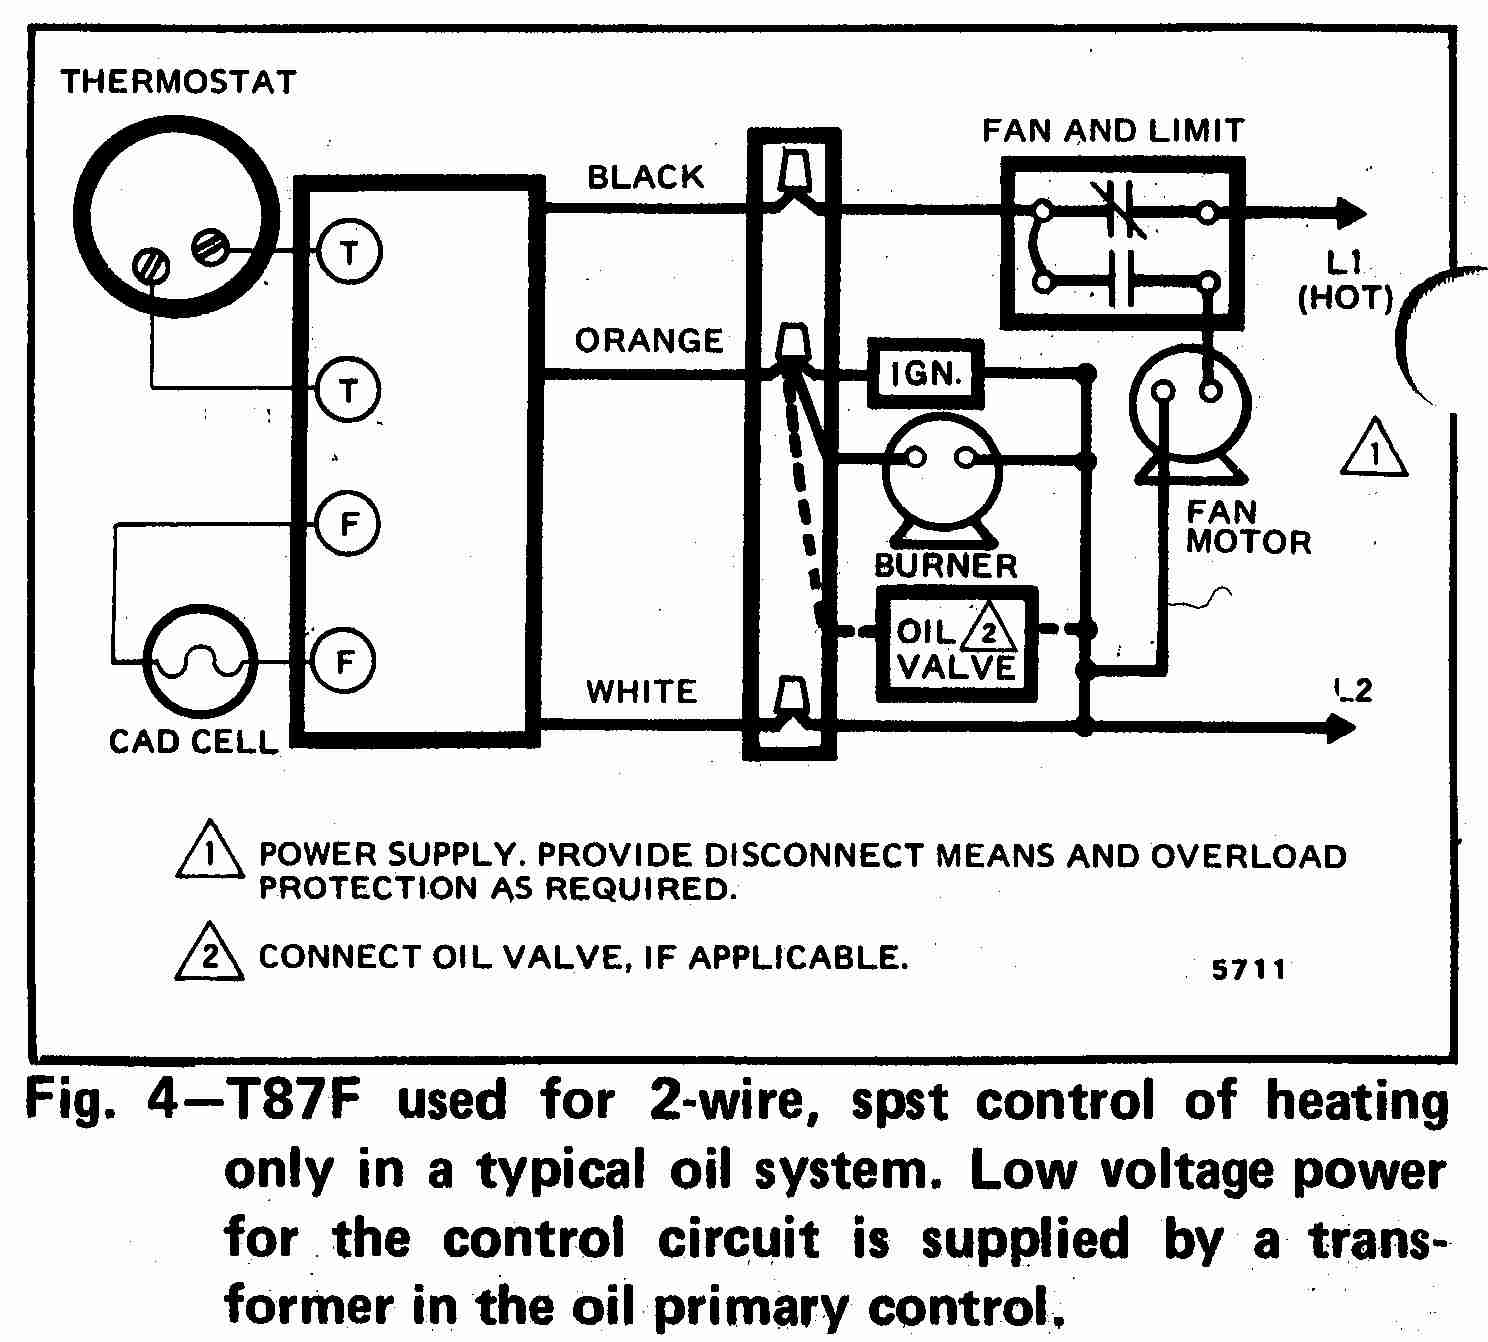 TT_T87F_0002_2W_DJF room thermostat wiring diagrams for hvac systems honeywell baseboard thermostat wiring diagram at panicattacktreatment.co